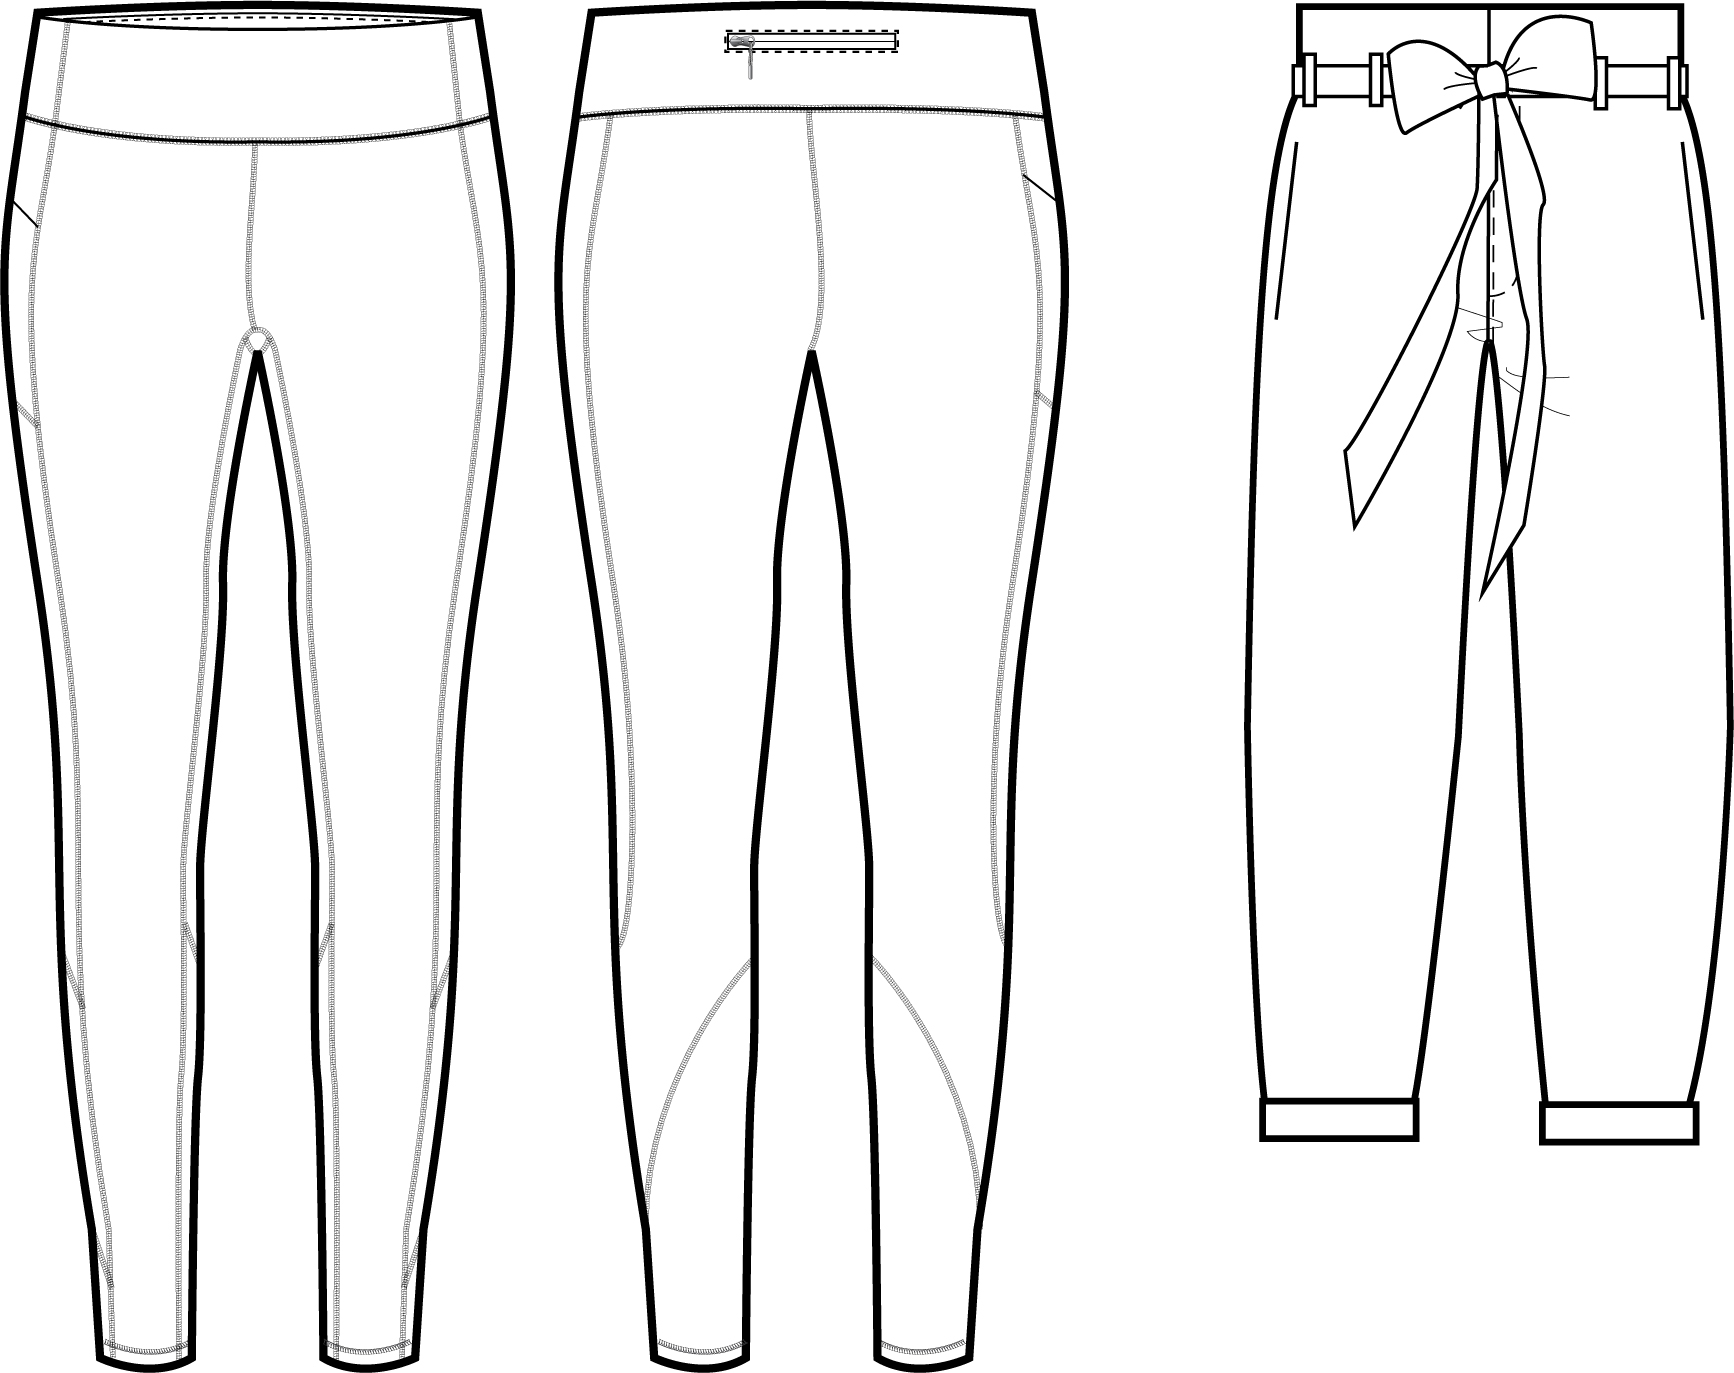 introduction-to-technical-flats-section-8-other-garments-2-points-of-measure.jpg